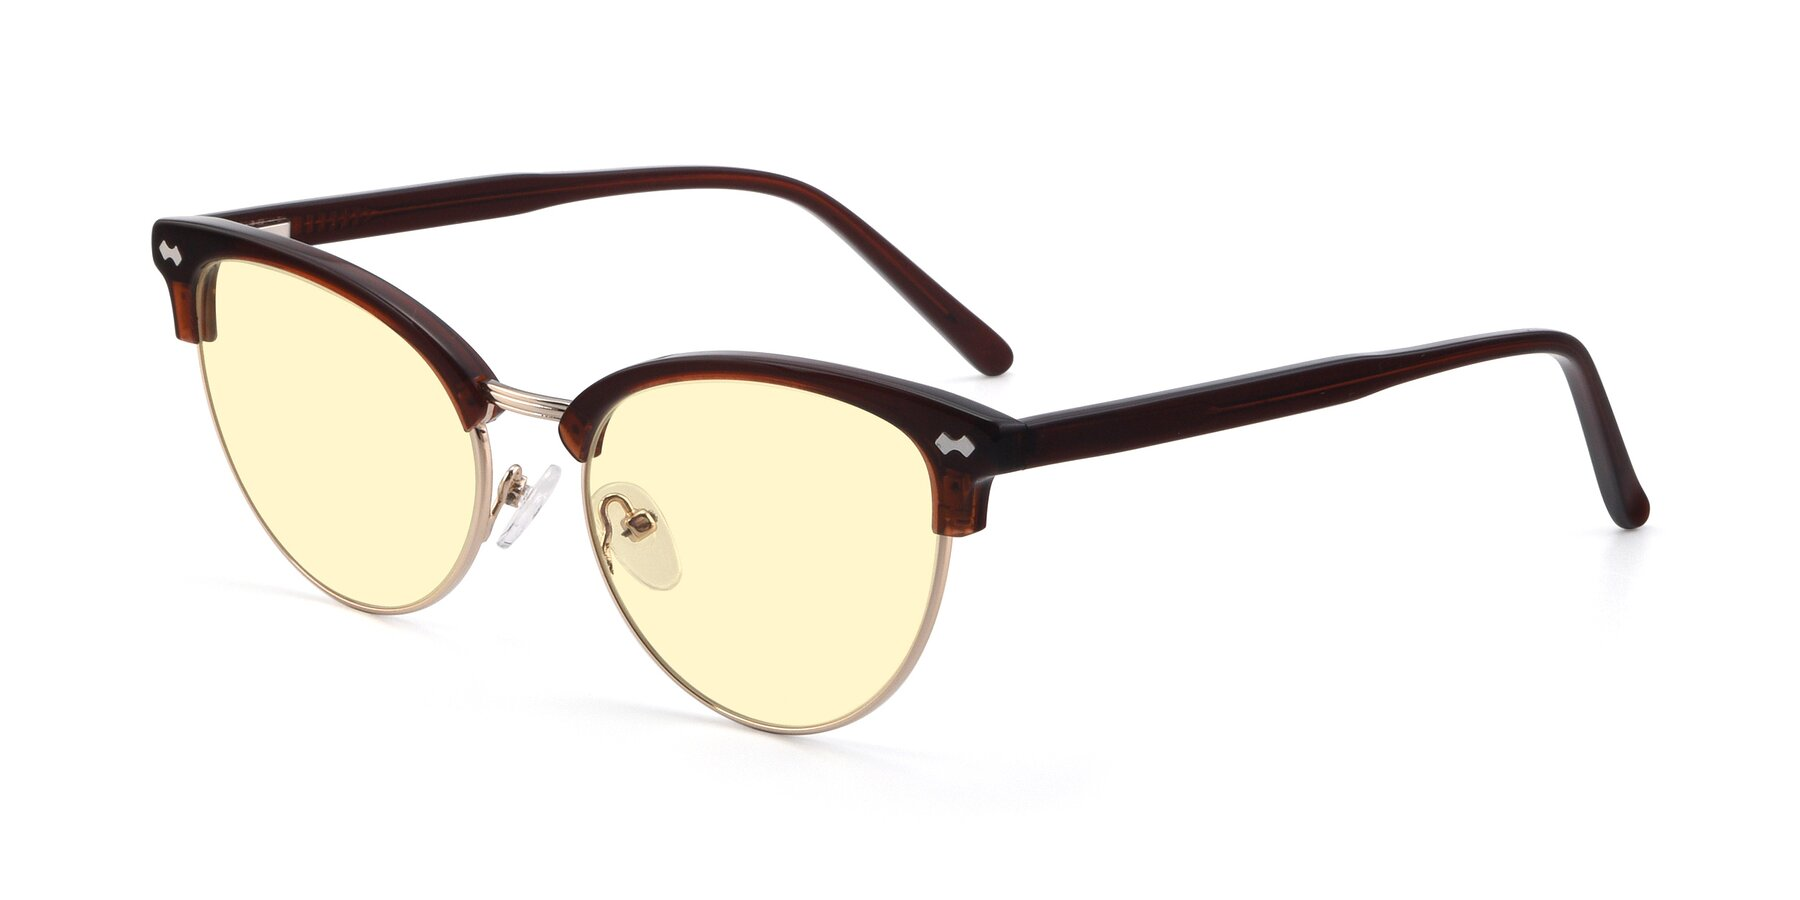 Angle of 17461 in Tortoise-Black with Light Yellow Tinted Lenses